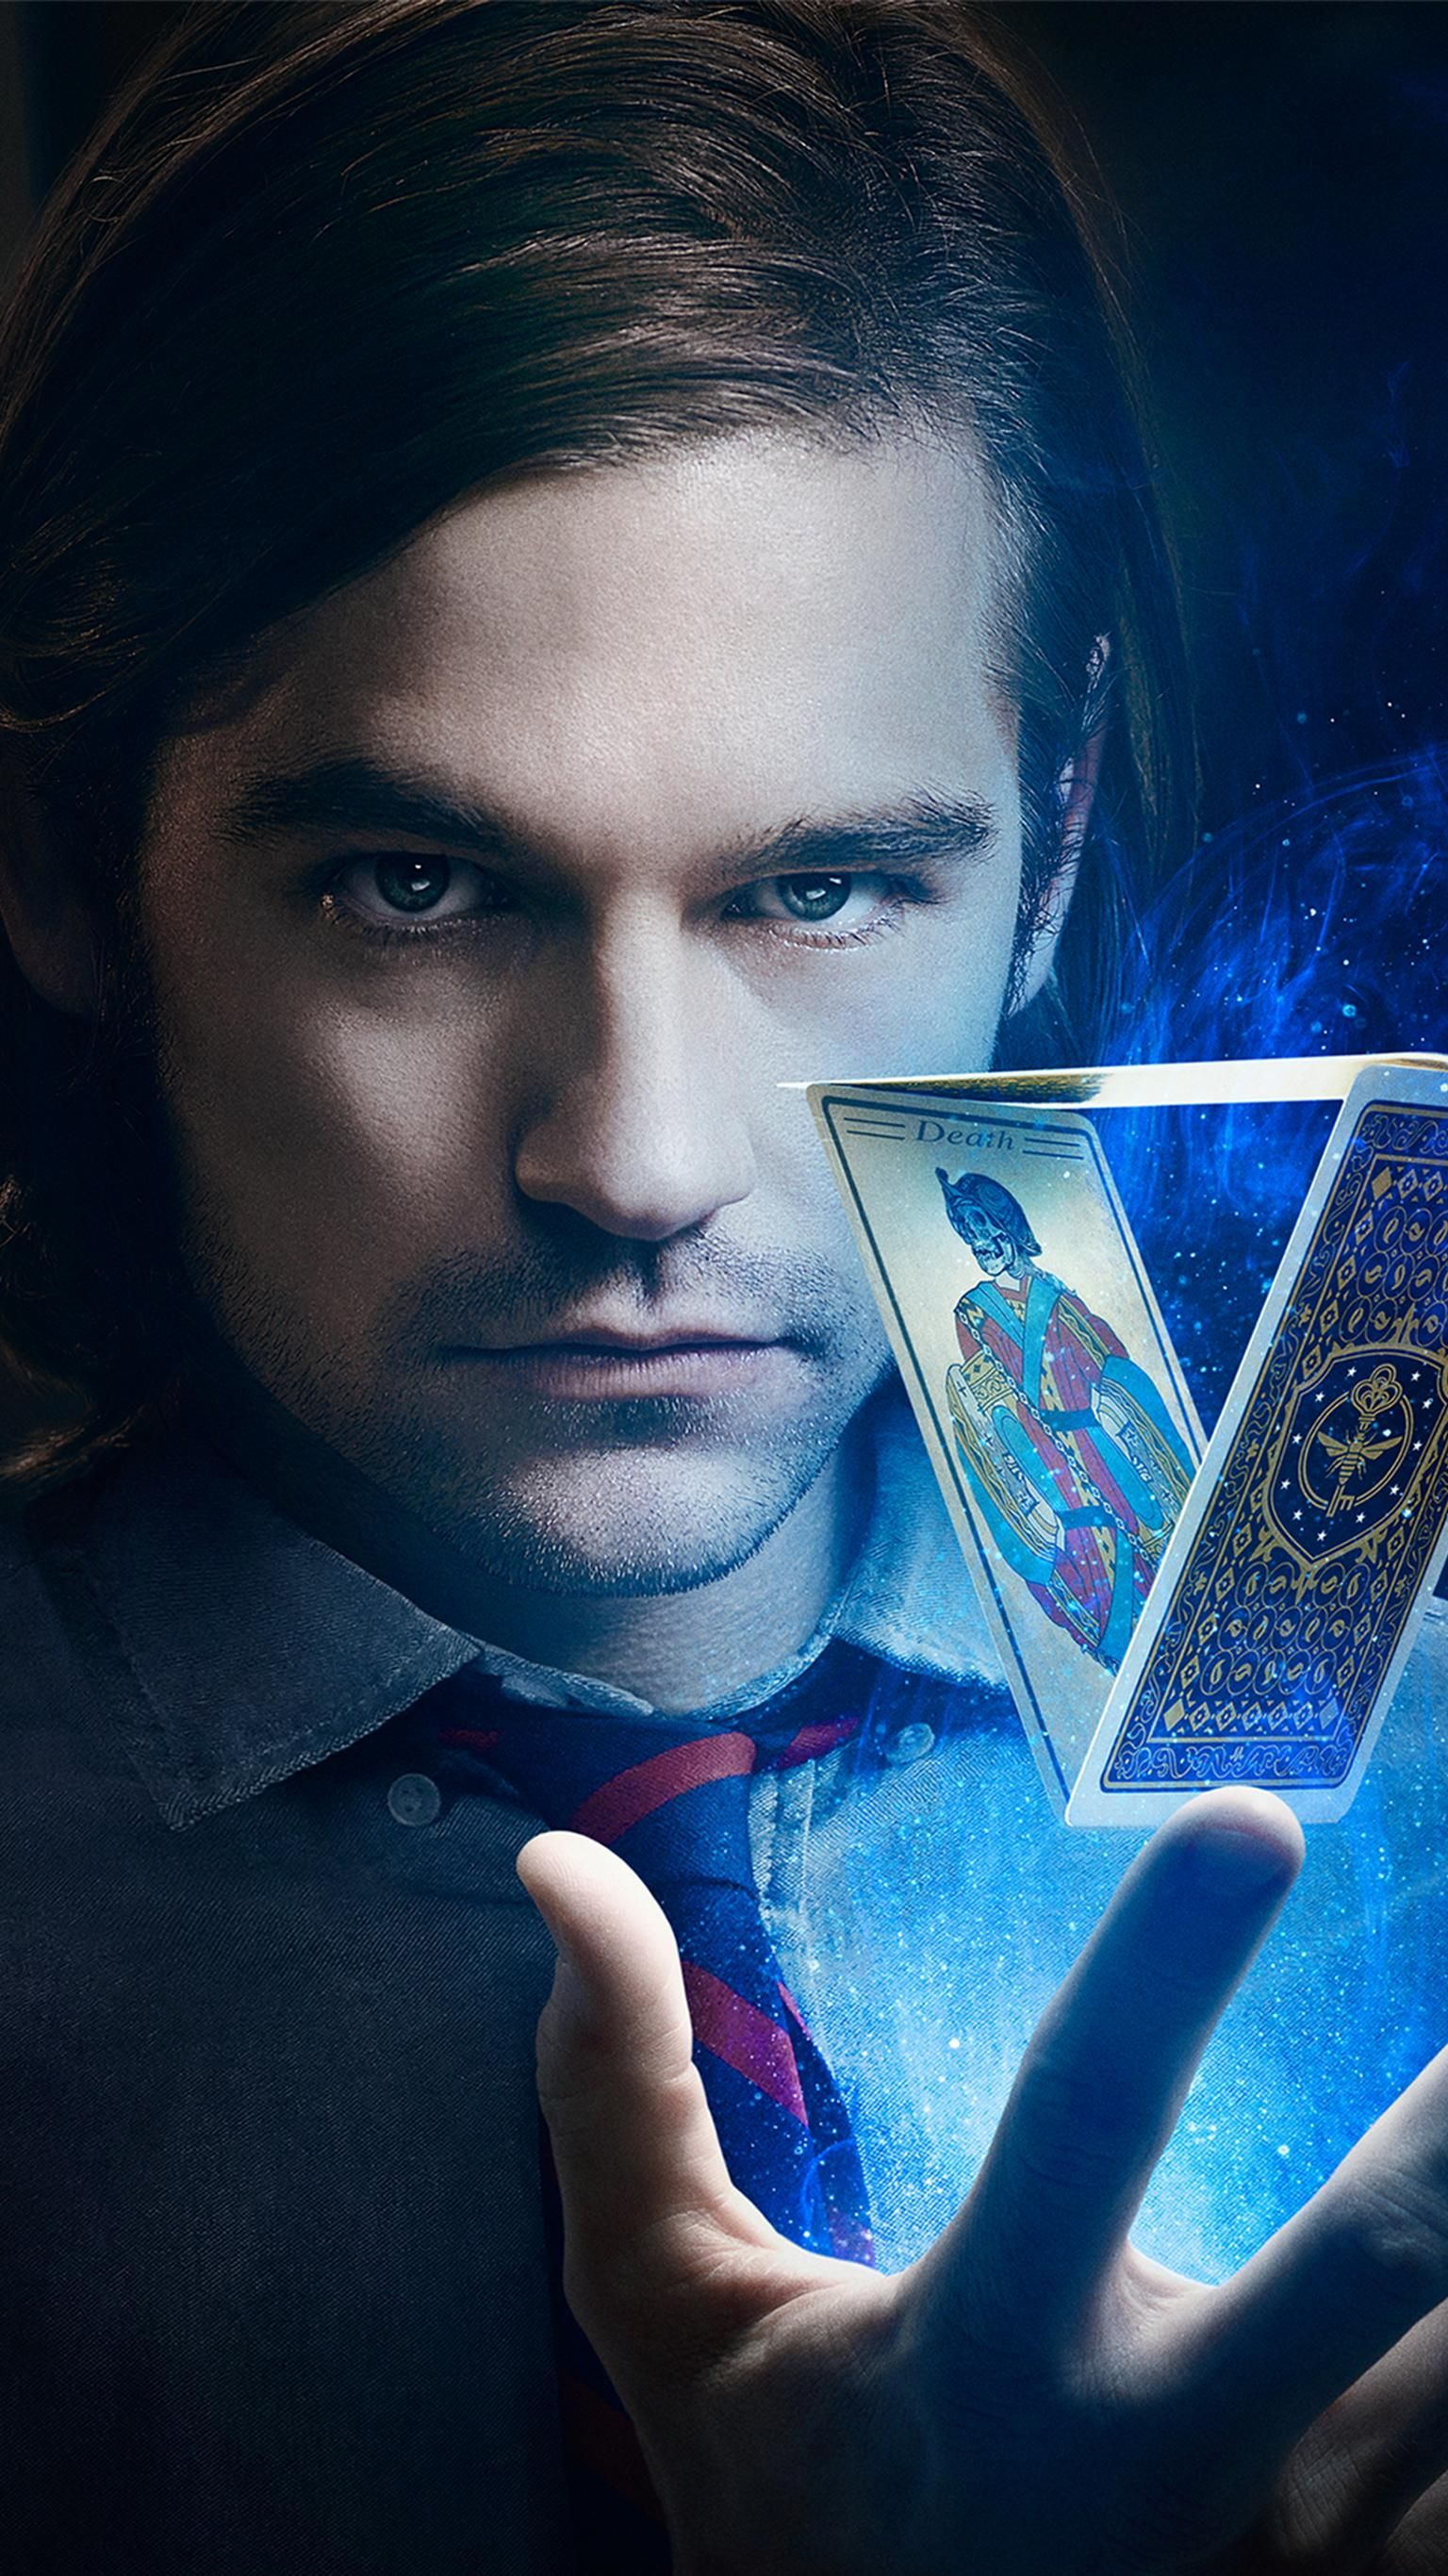 Libros Para Aprender Magia The Magicians Phone Wallpaper Celebrities